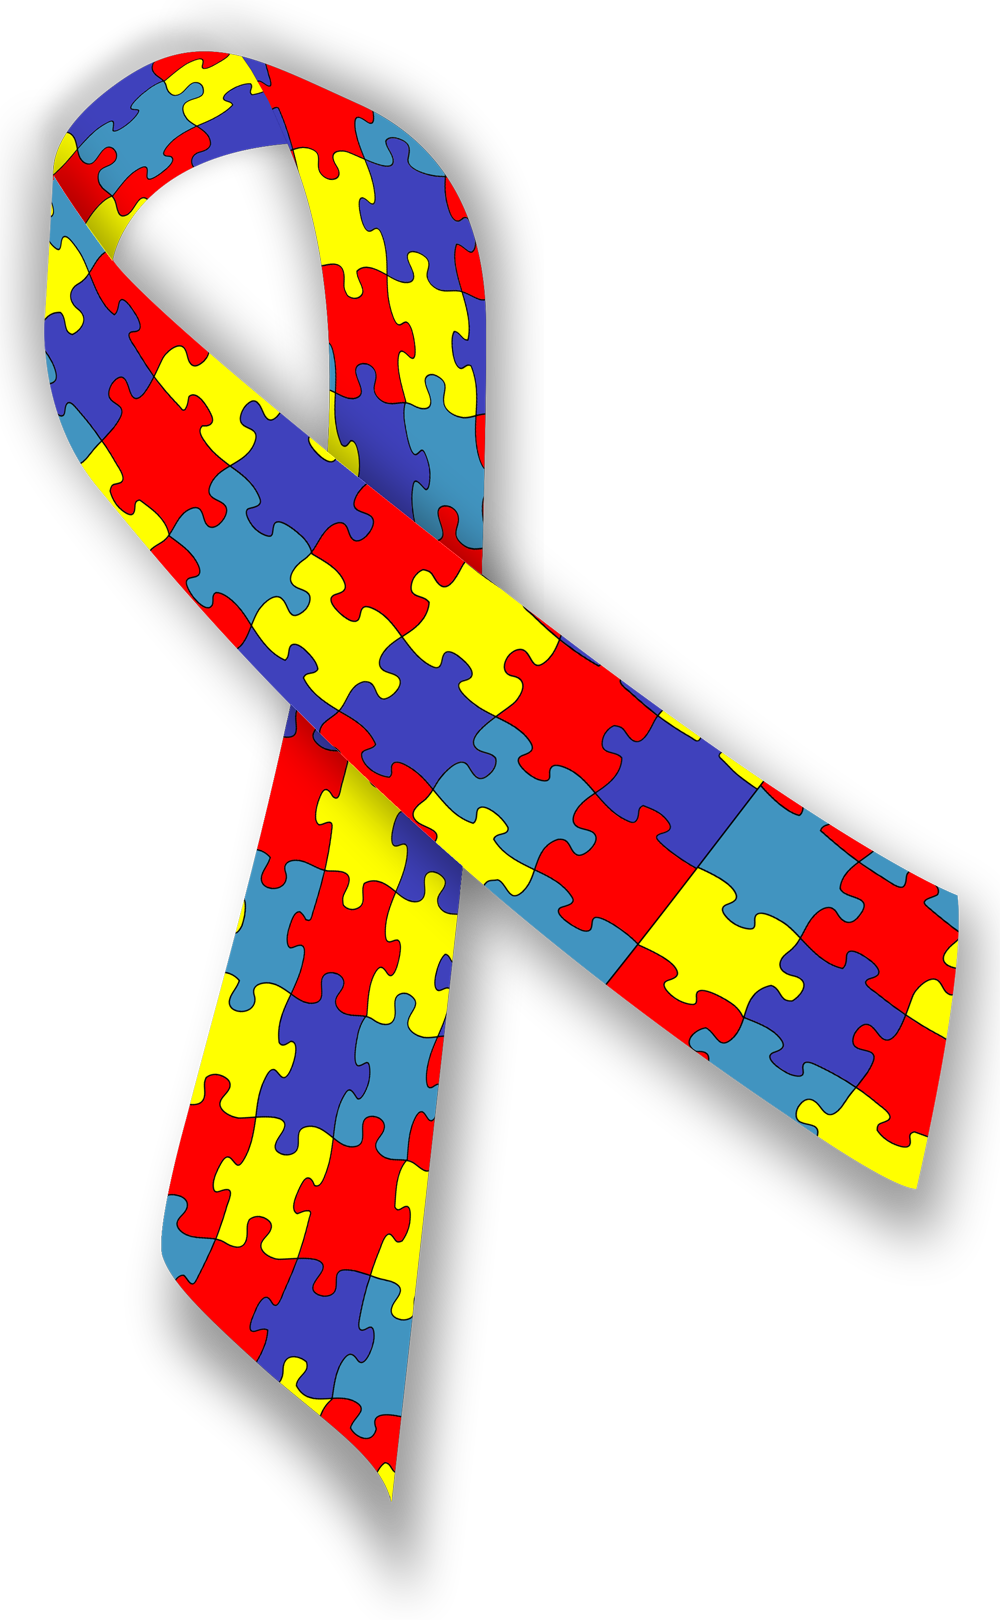 File:Autism Awareness Ribbon.png.